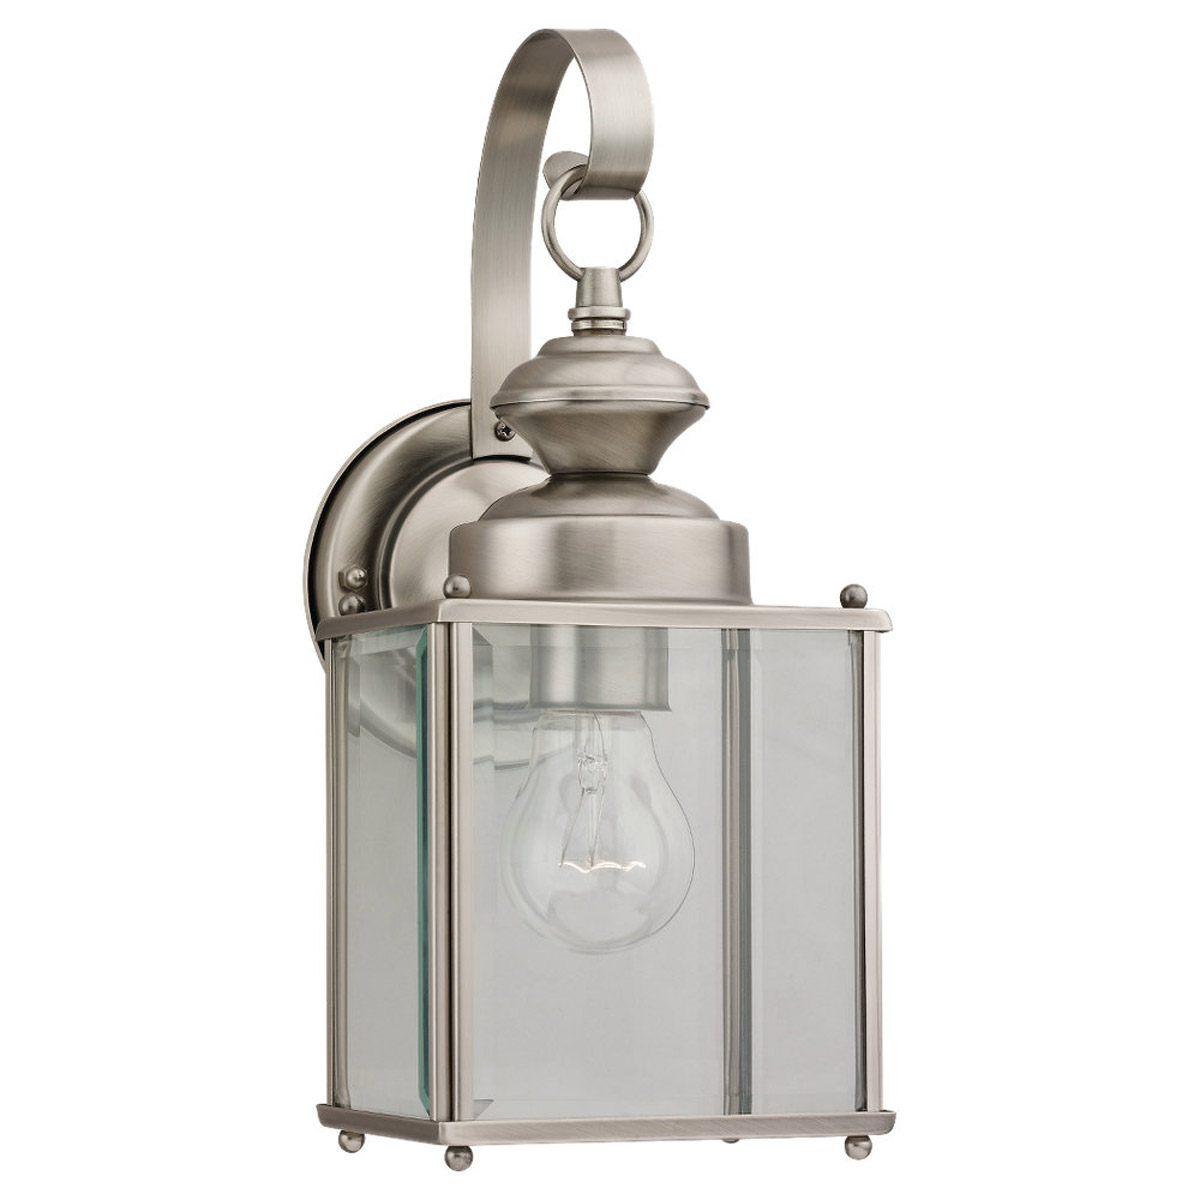 Sea Gull Lighting Jamestowne 1 Light Outdoor Wall Lantern in Antique Brushed Nickel 8457-965